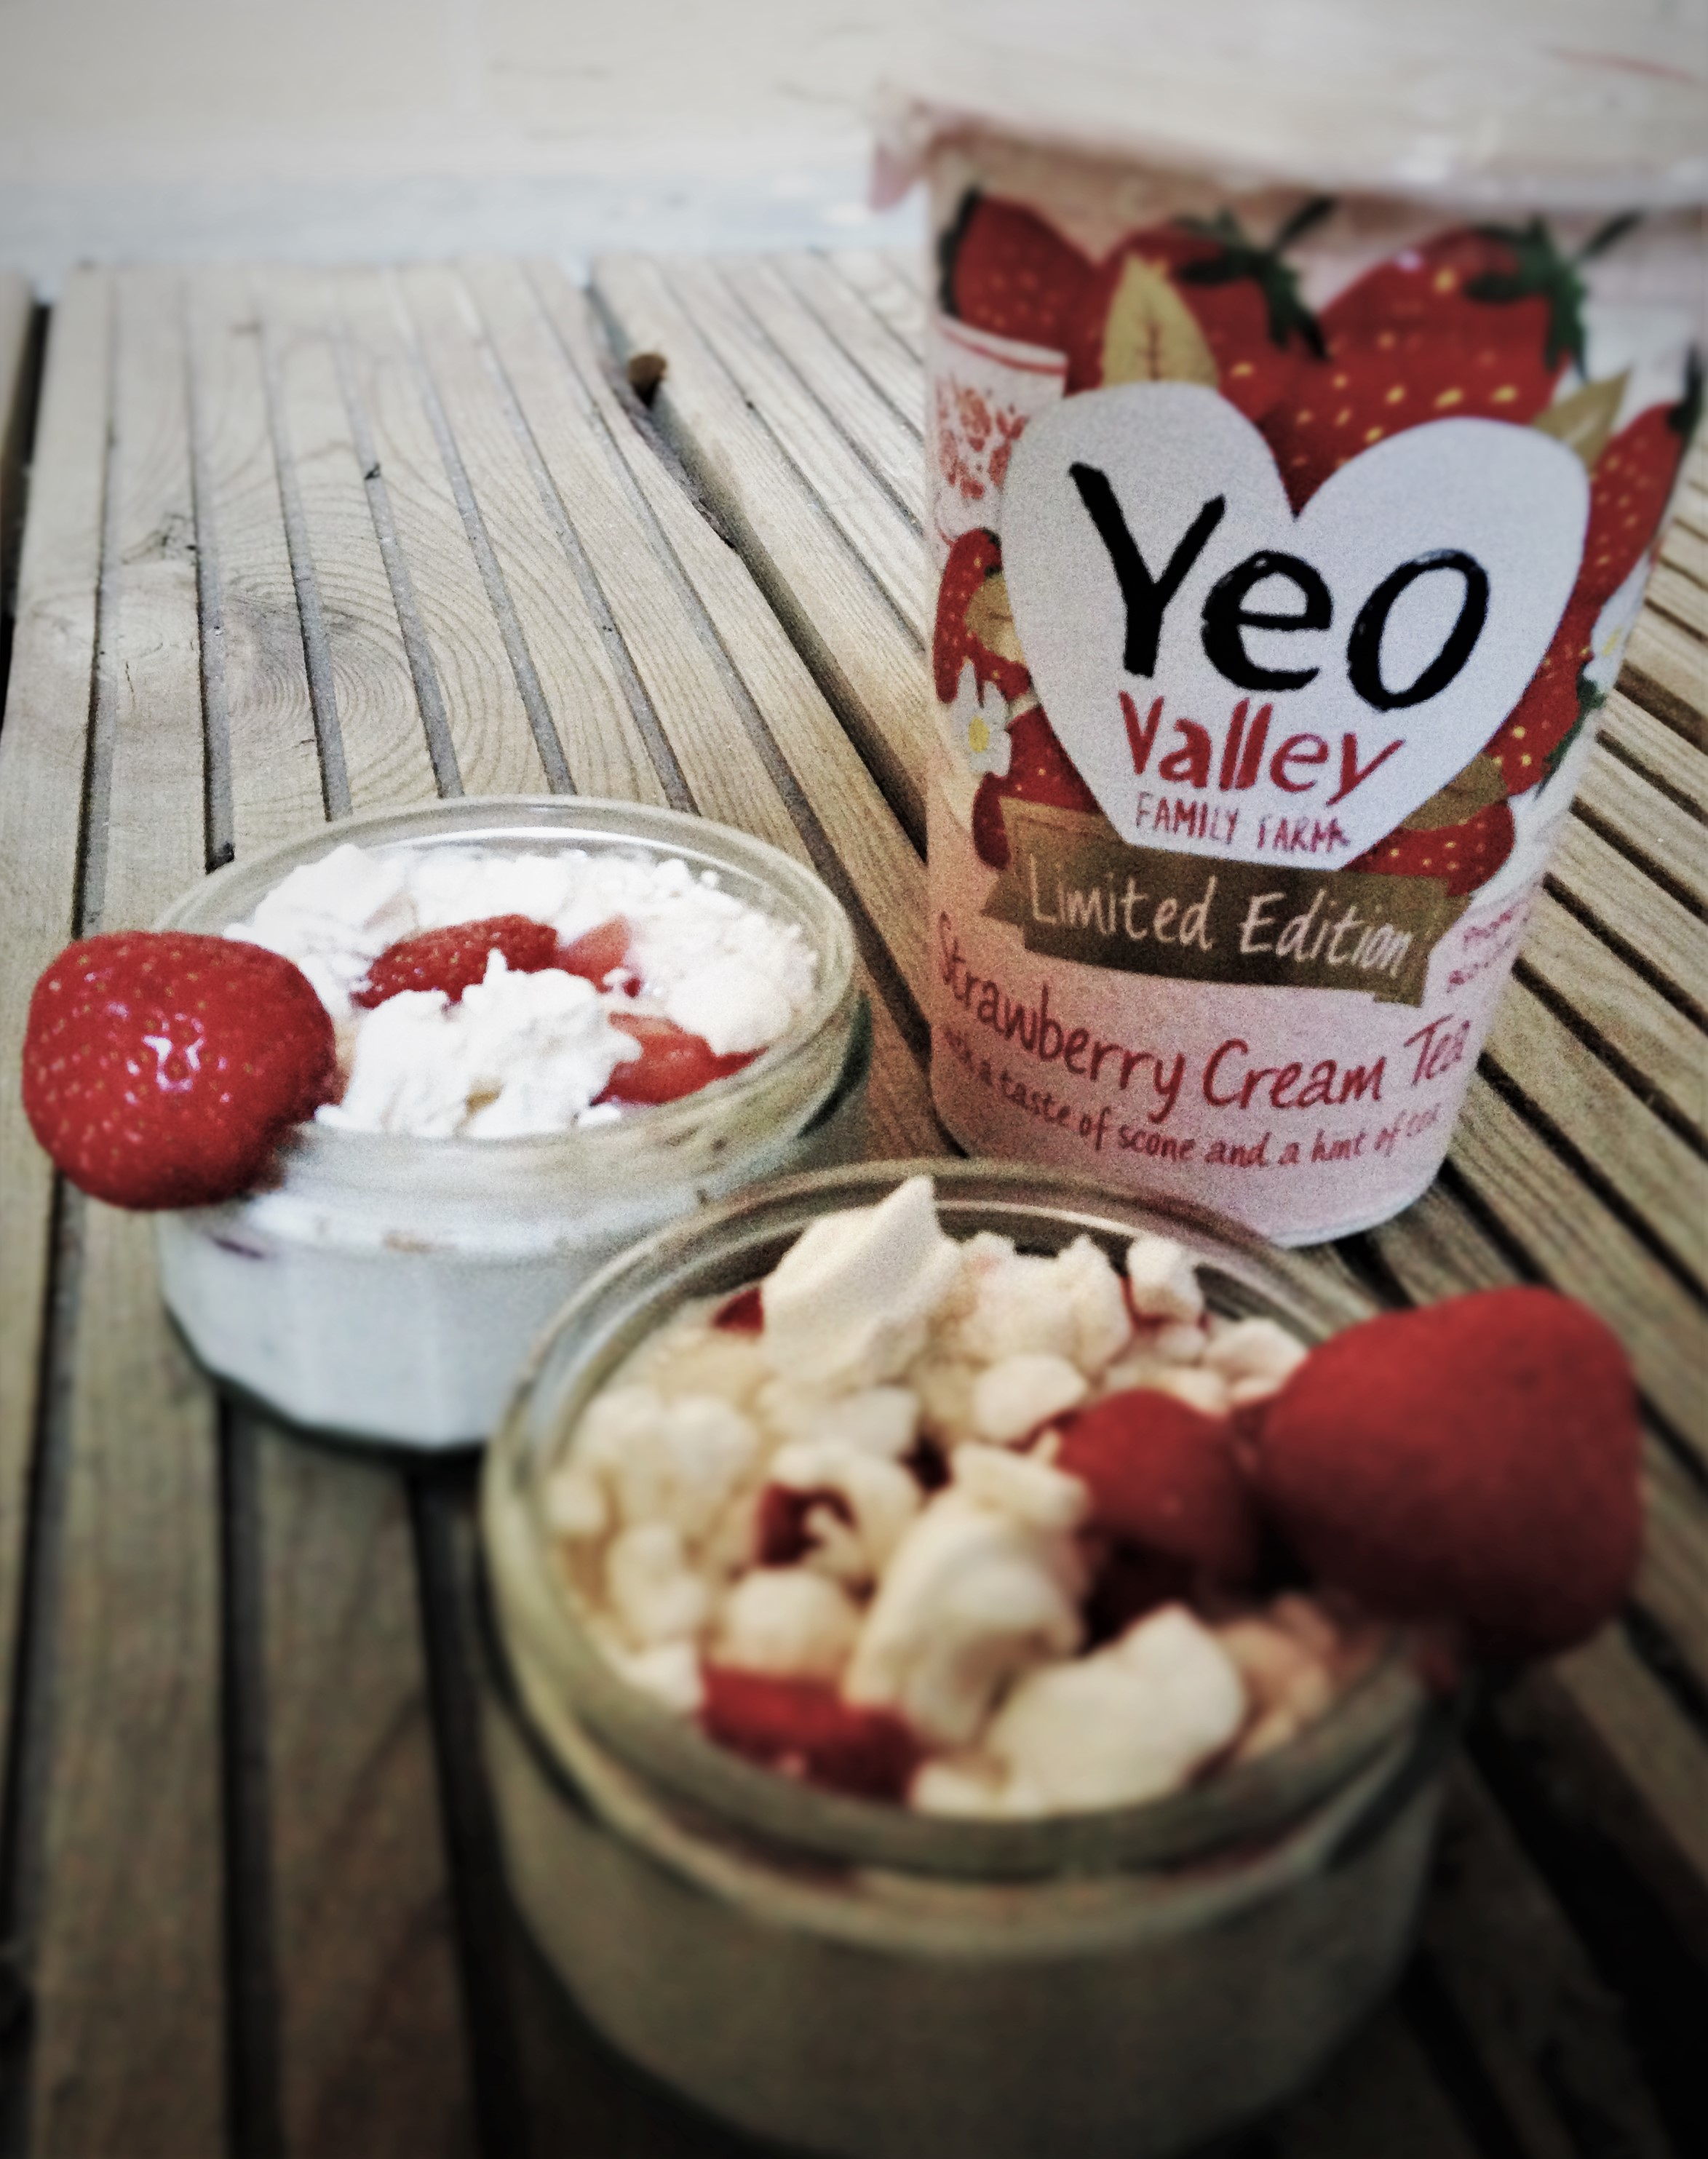 Yeo Valley Strawberry Cream Tea Yogurt - Eton Mess